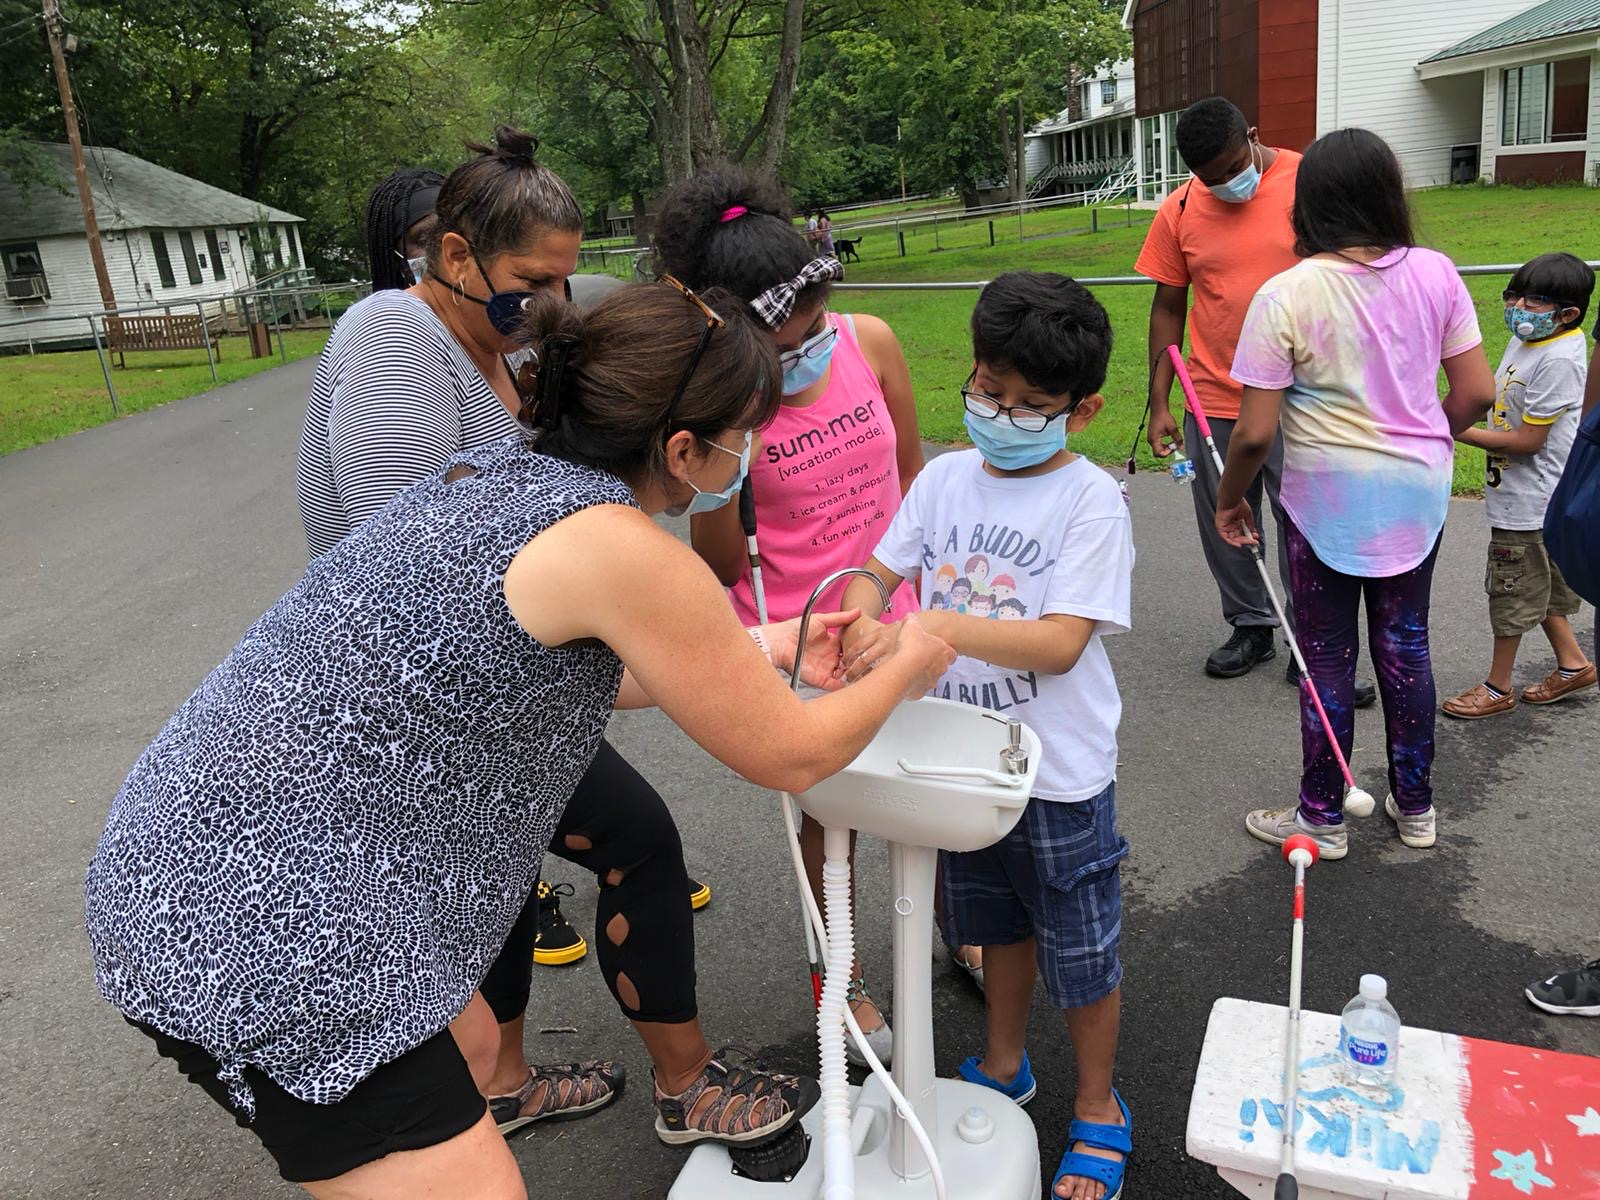 Children and adults line up by an outdoor sink as one of VCB's staff helps one of the children properly wash their hands.